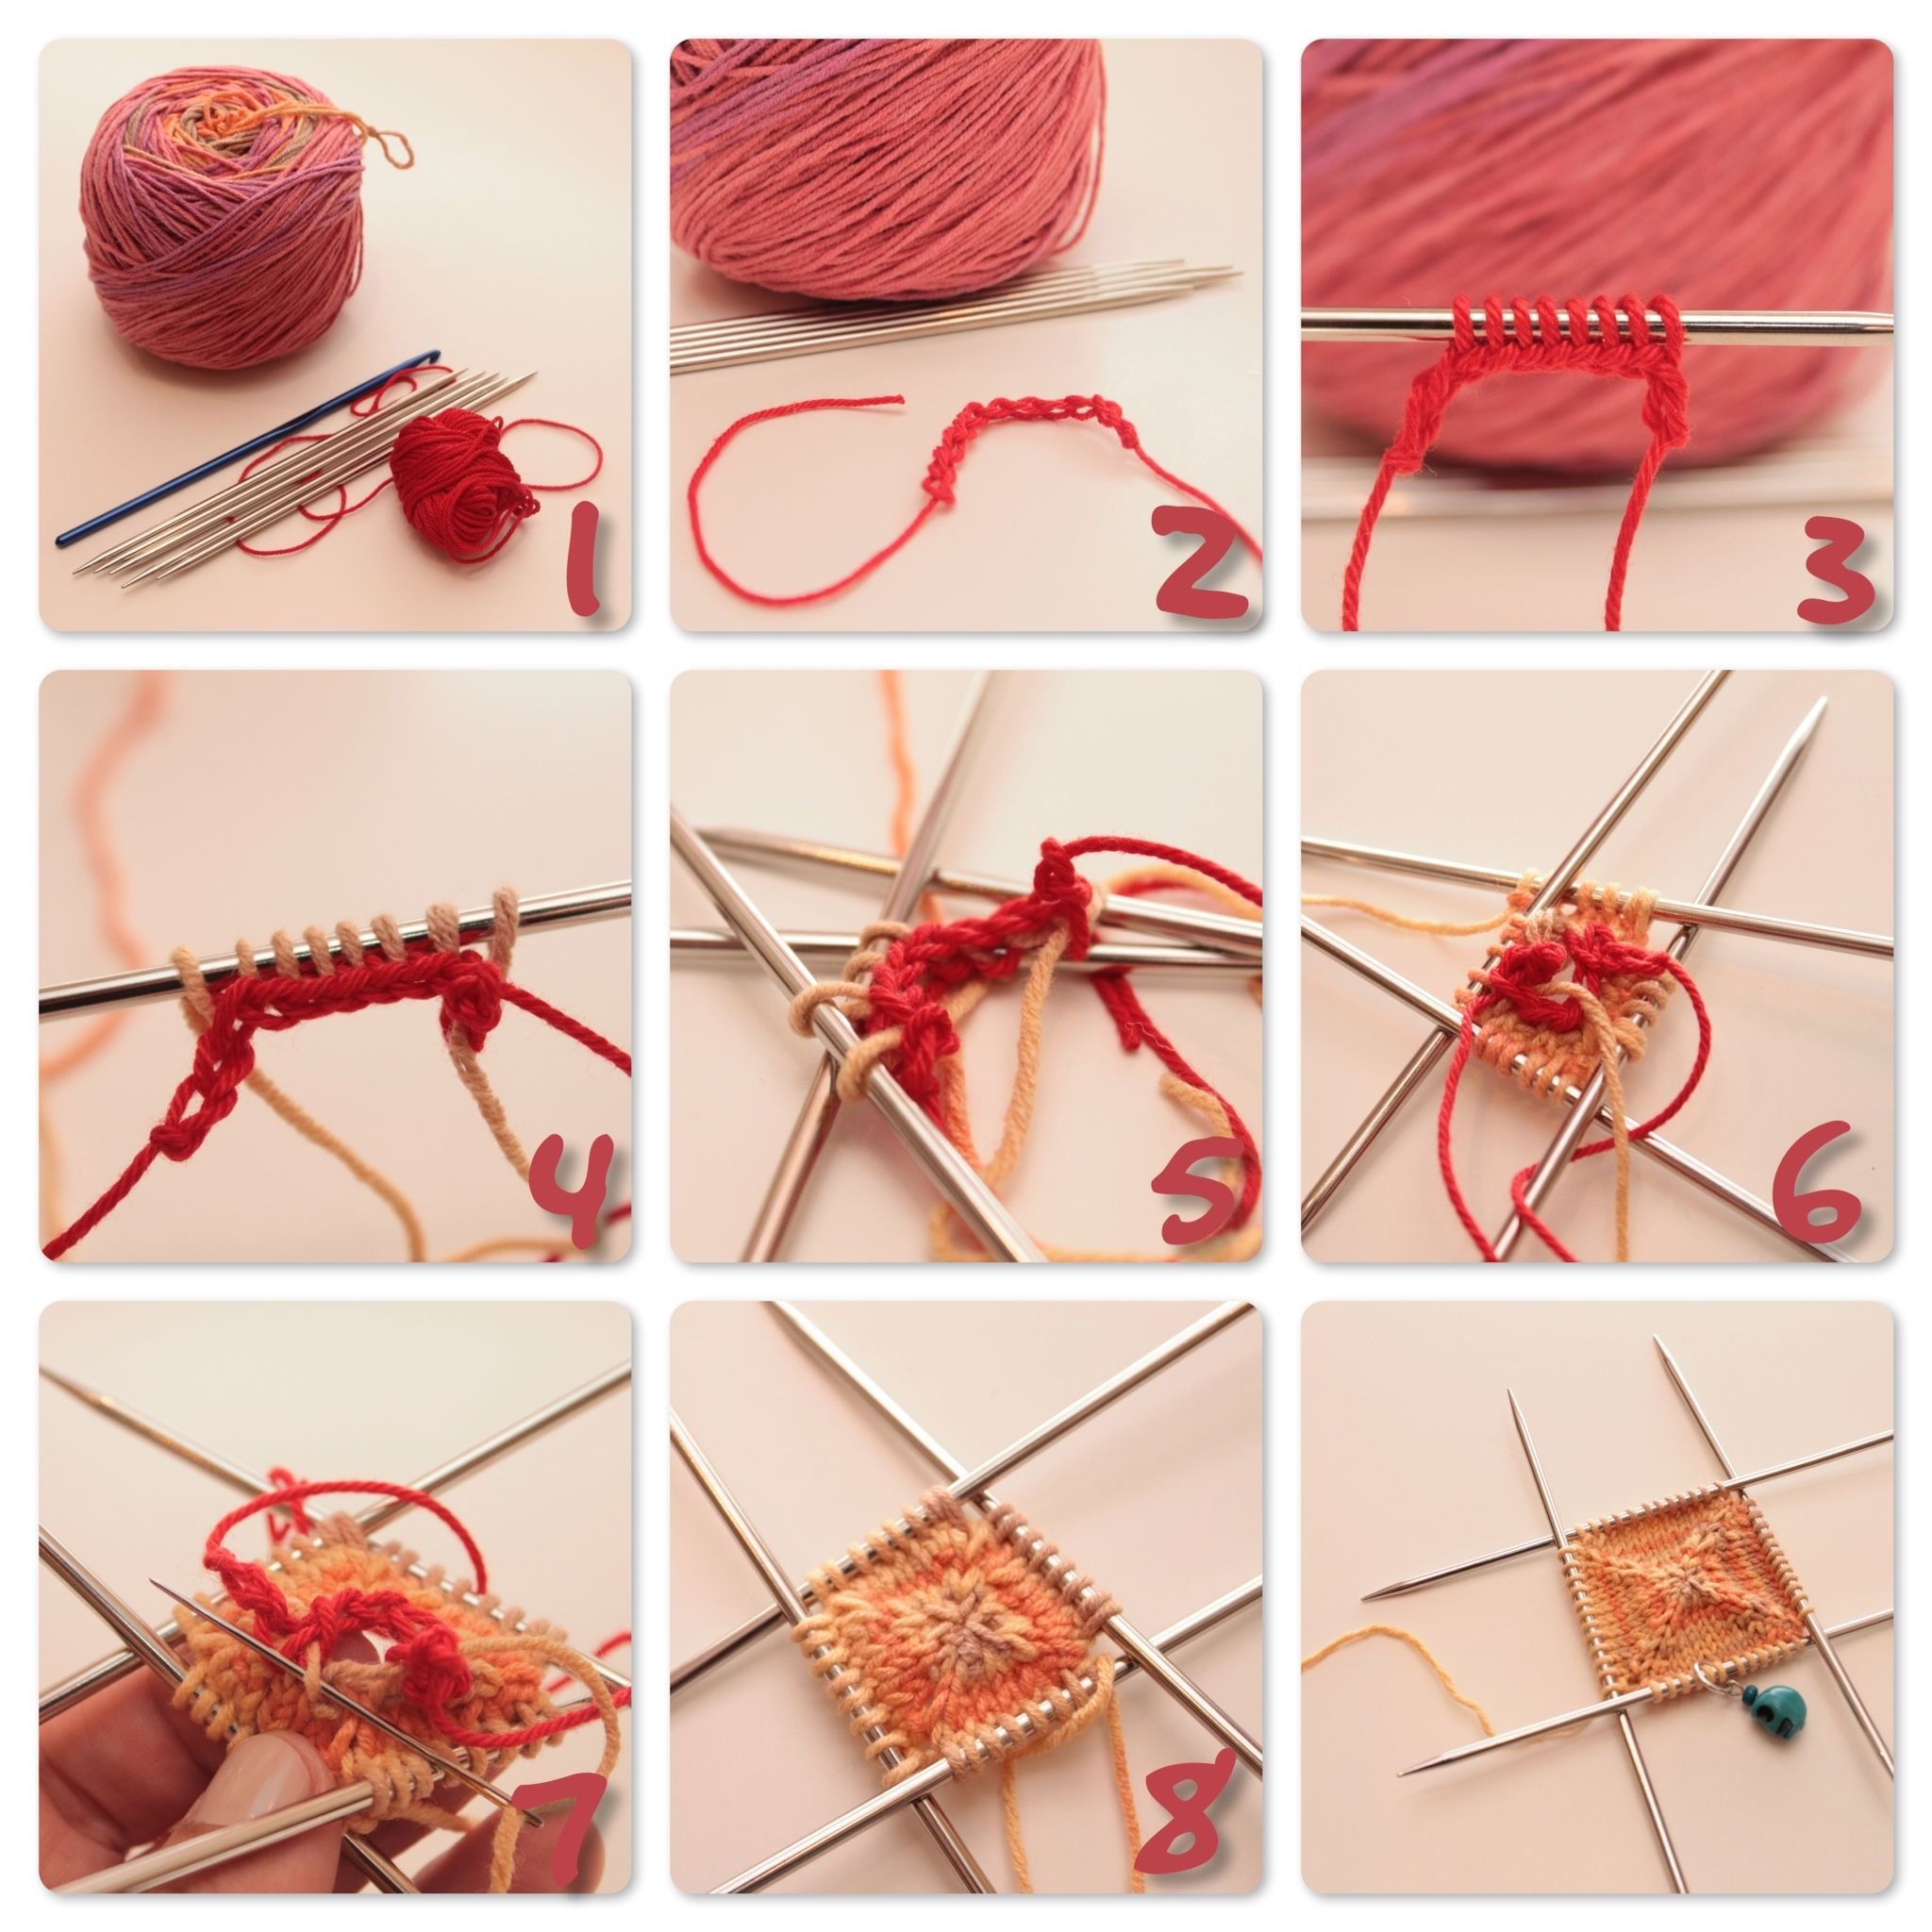 f102dd22d How to knit a flat square or circle starting at the center using a ...